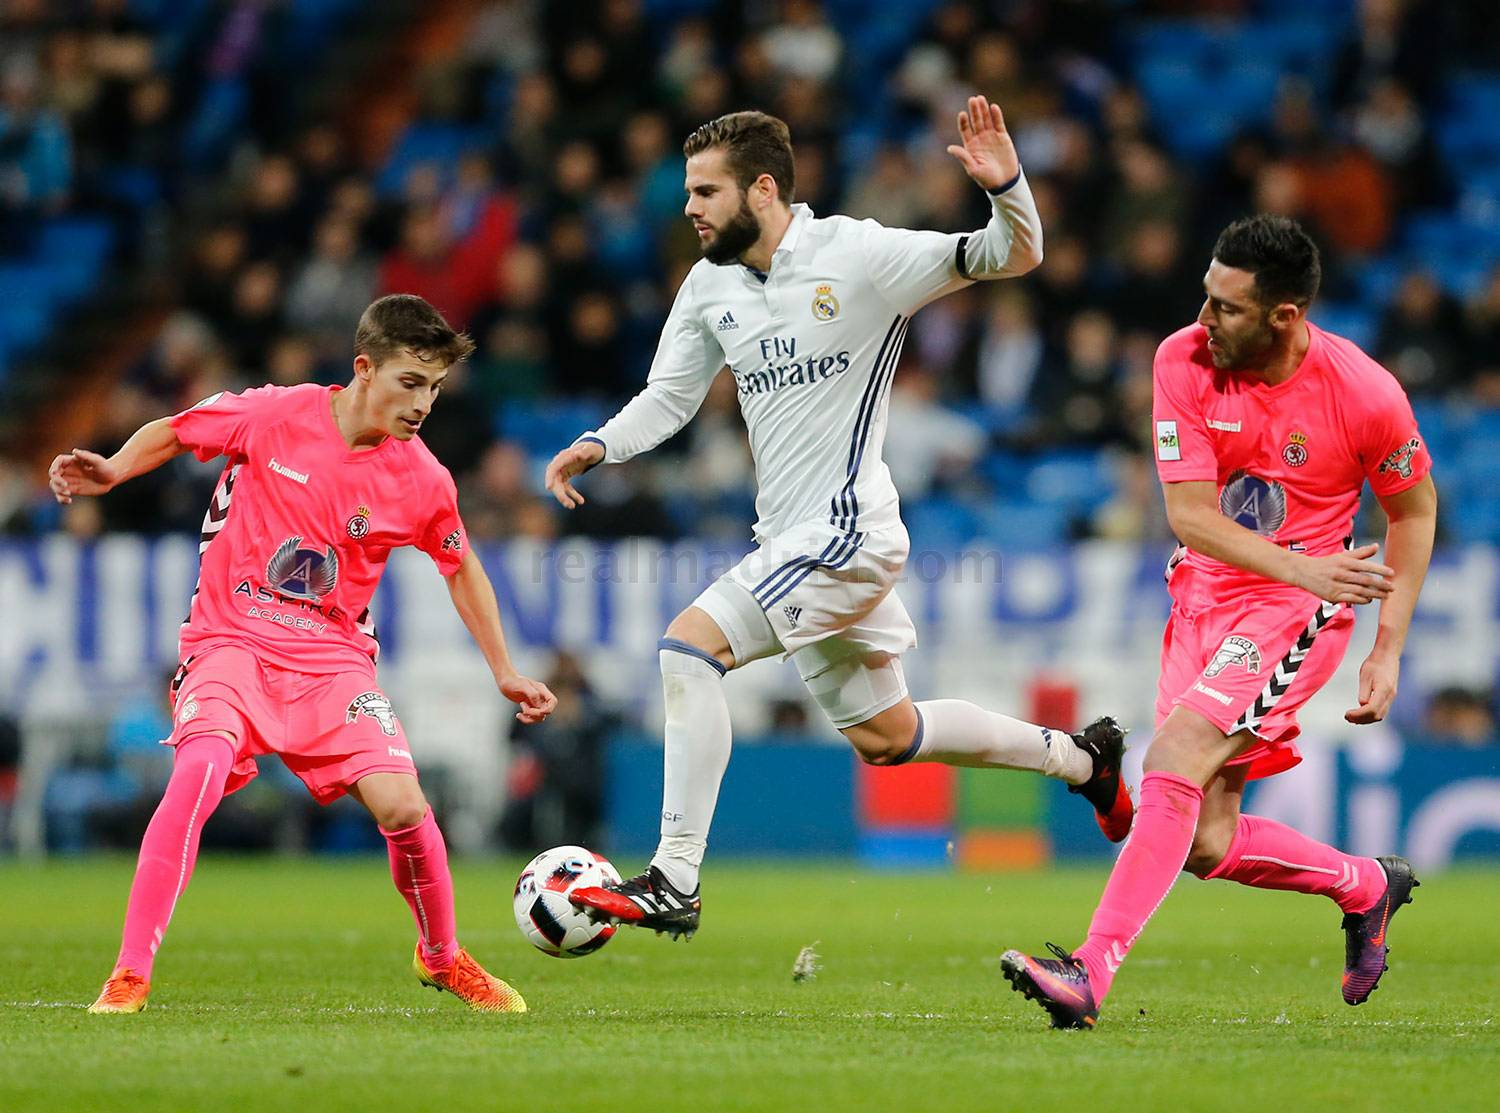 Real Madrid - Real Madrid - Cultural y Deportiva Leonesa - 30-11-2016